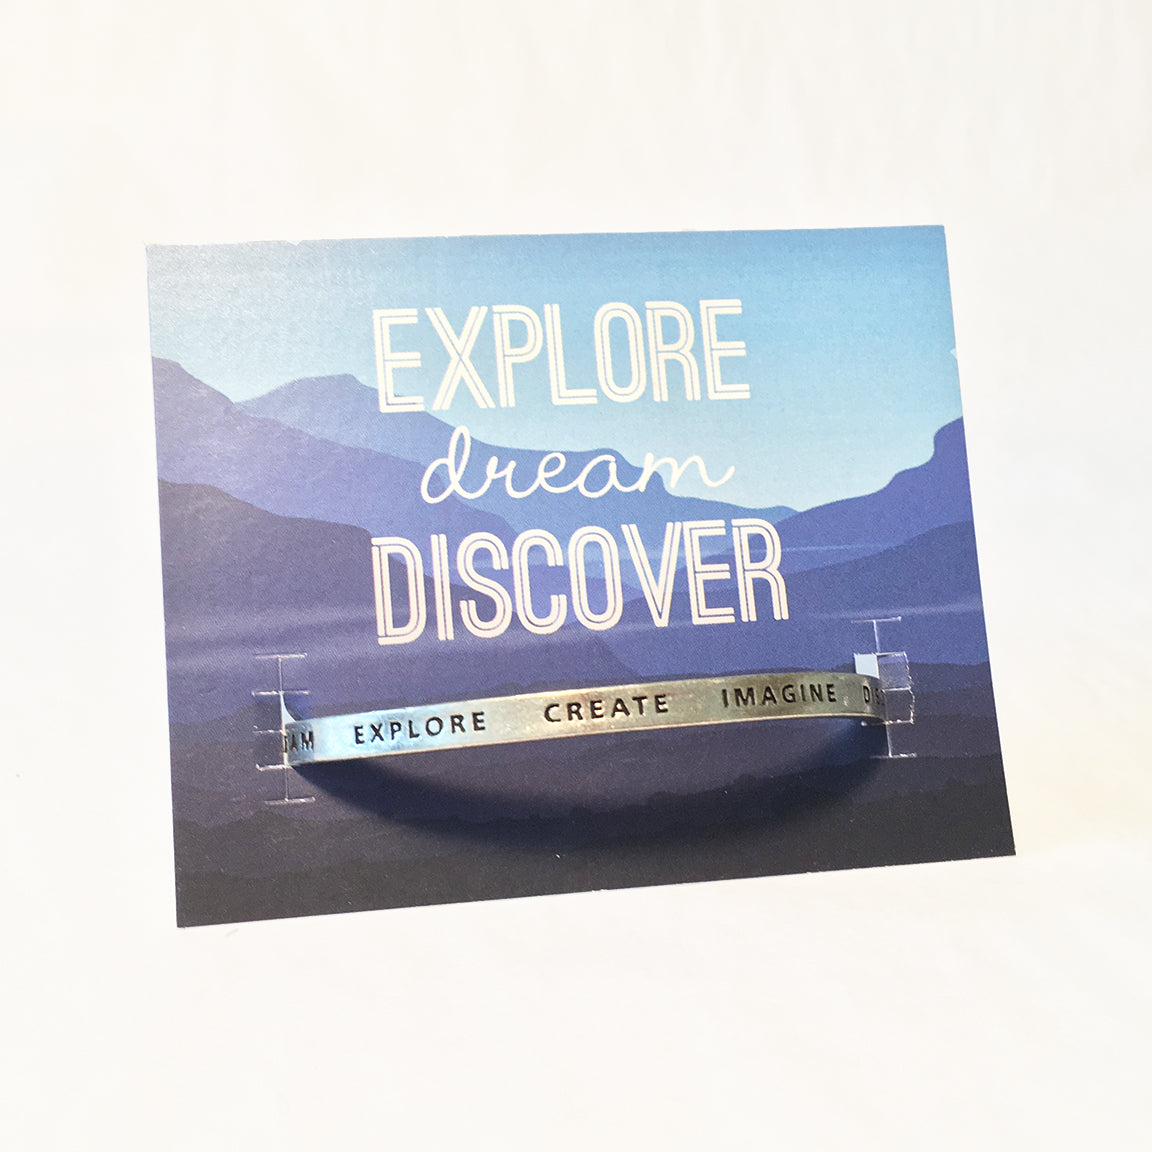 Adjustable cuff bracelet on a backer card with a mountain picture. Cuff has engraved words Dream Explore Create Imagine Discover